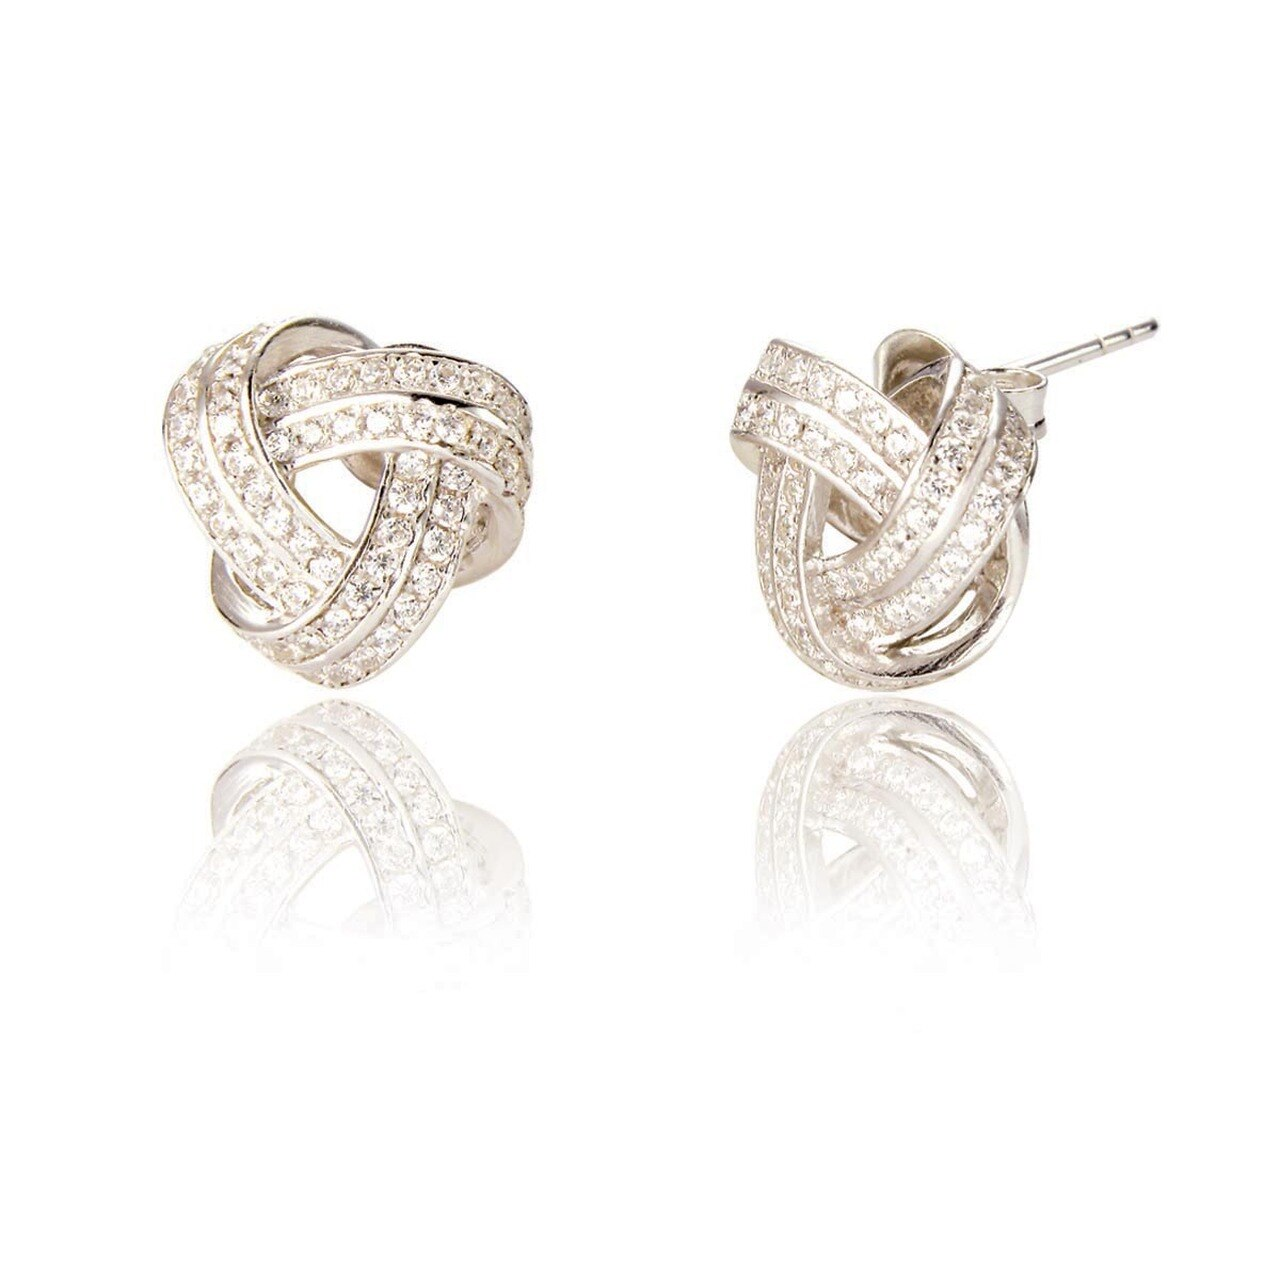 Spoke 925, Eugenie Knot Stud Earrings